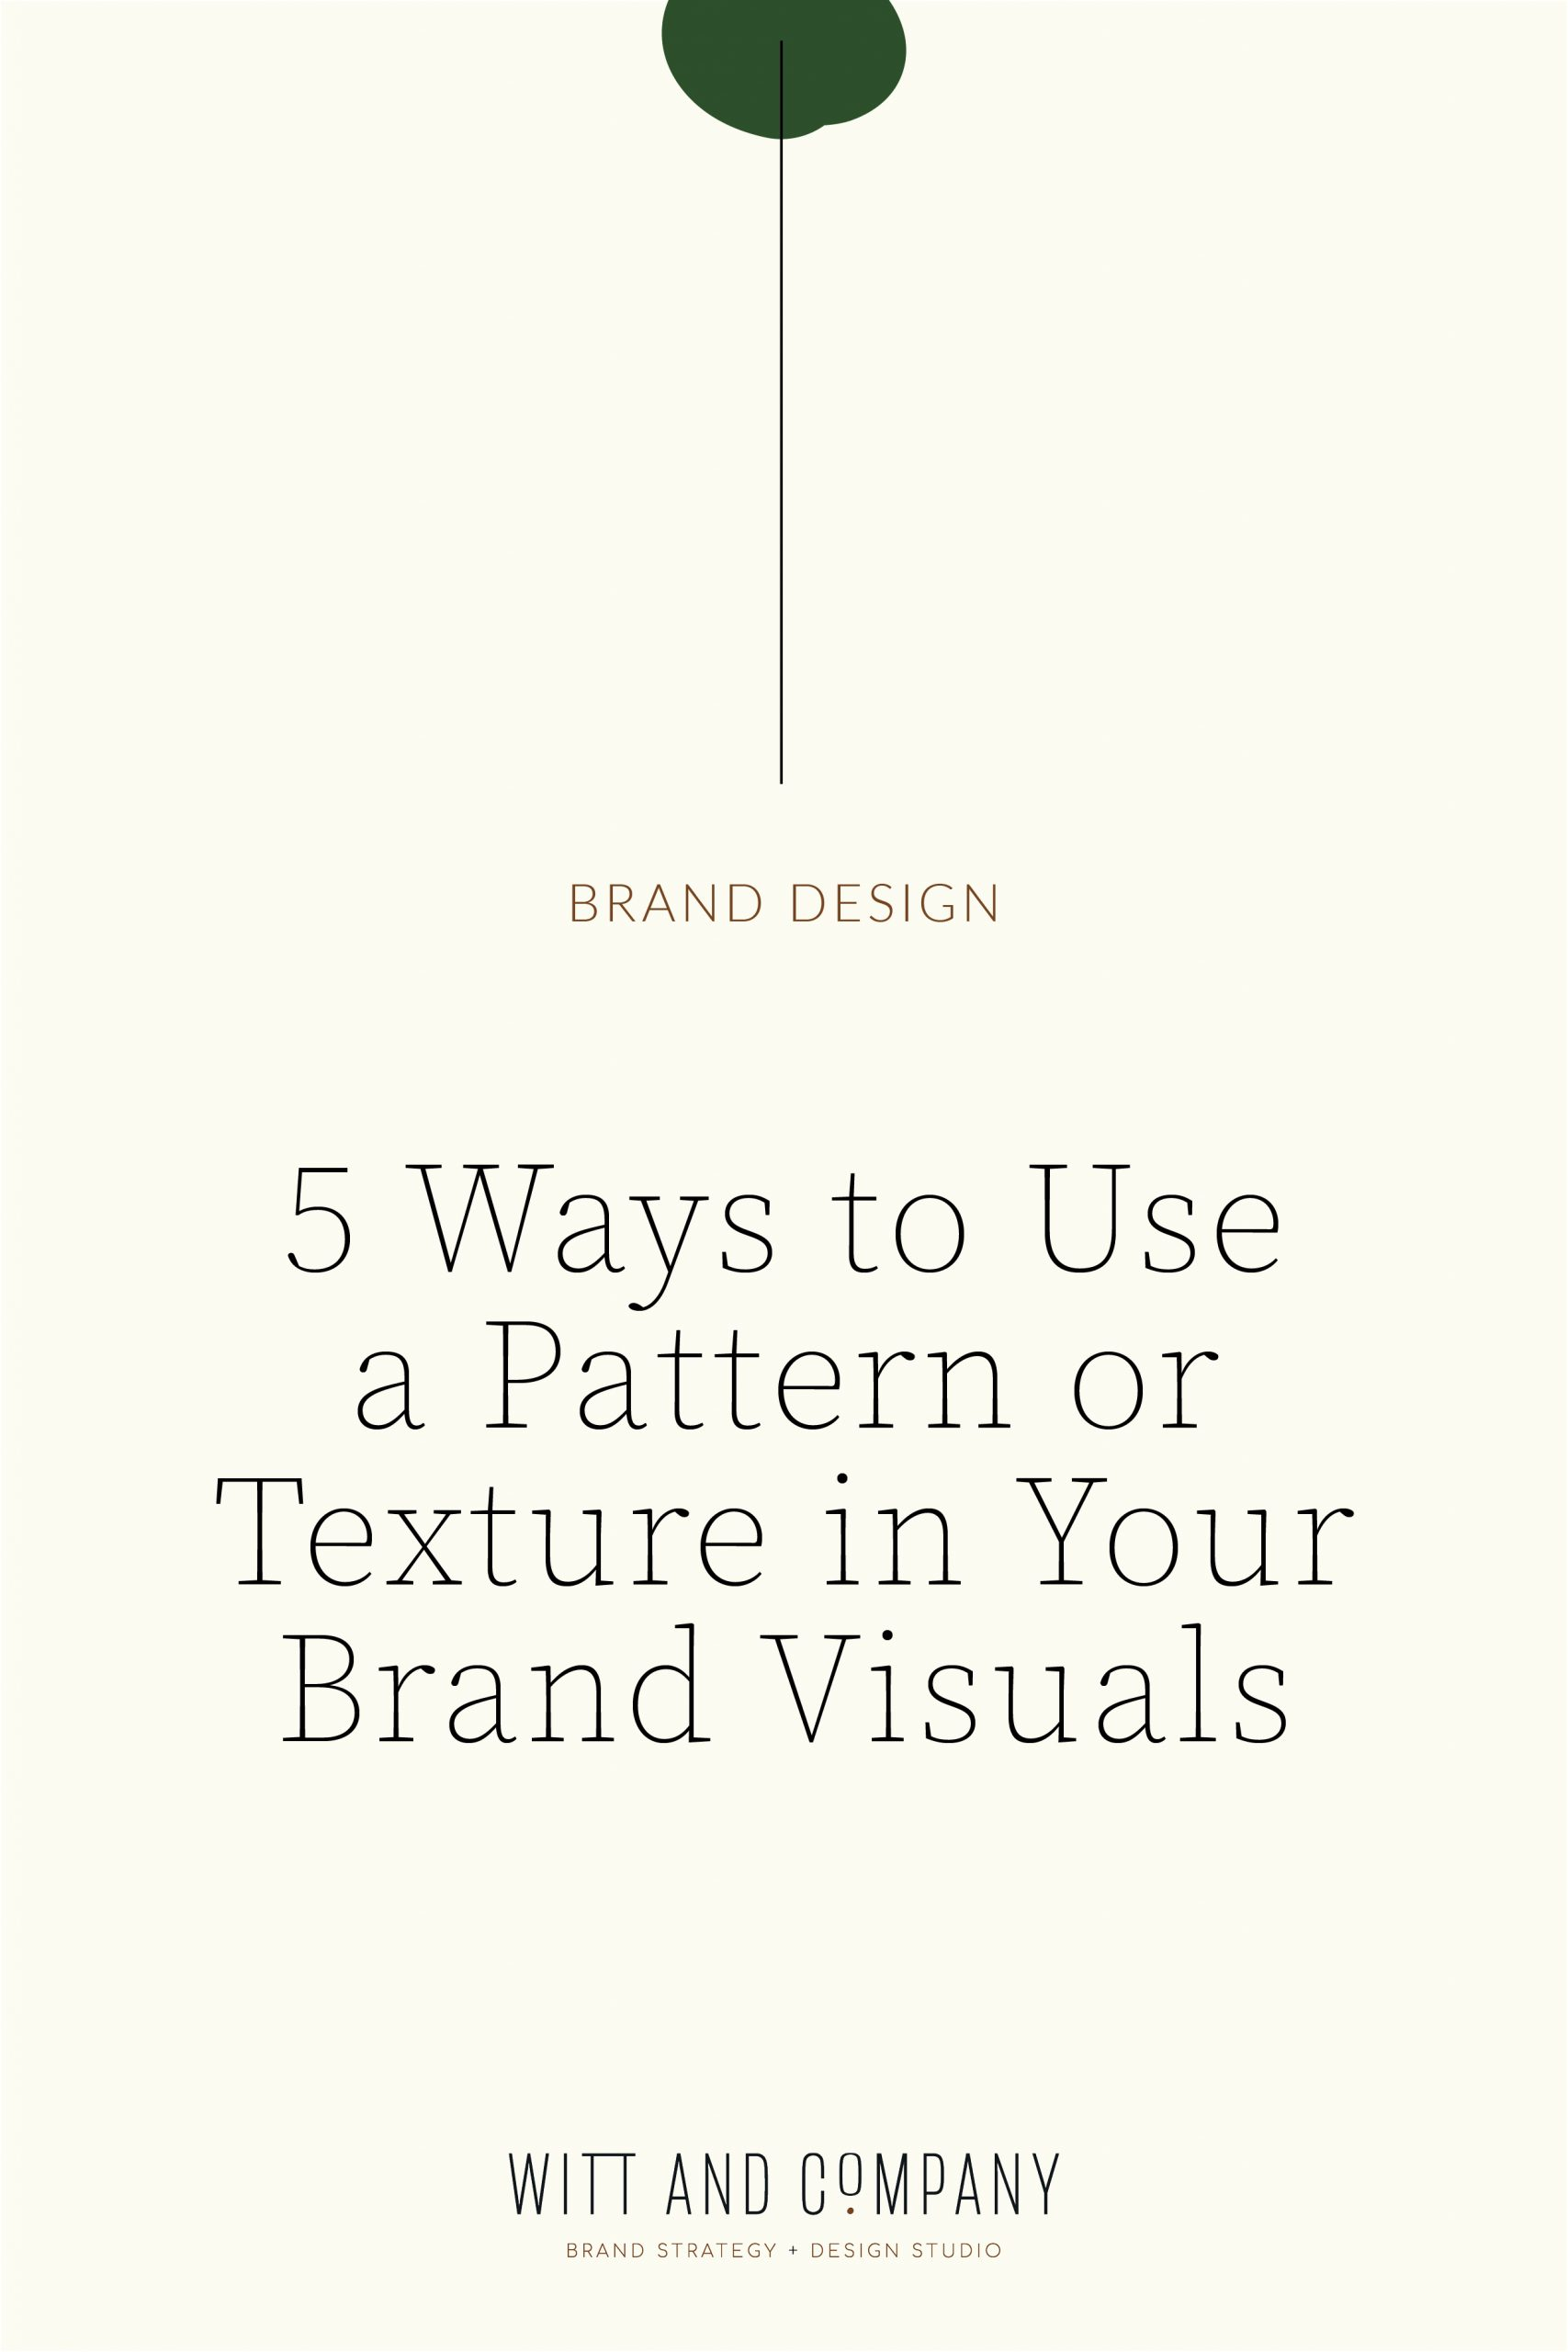 Five Ways to Use a Pattern or Texture Within Your Visual Brand